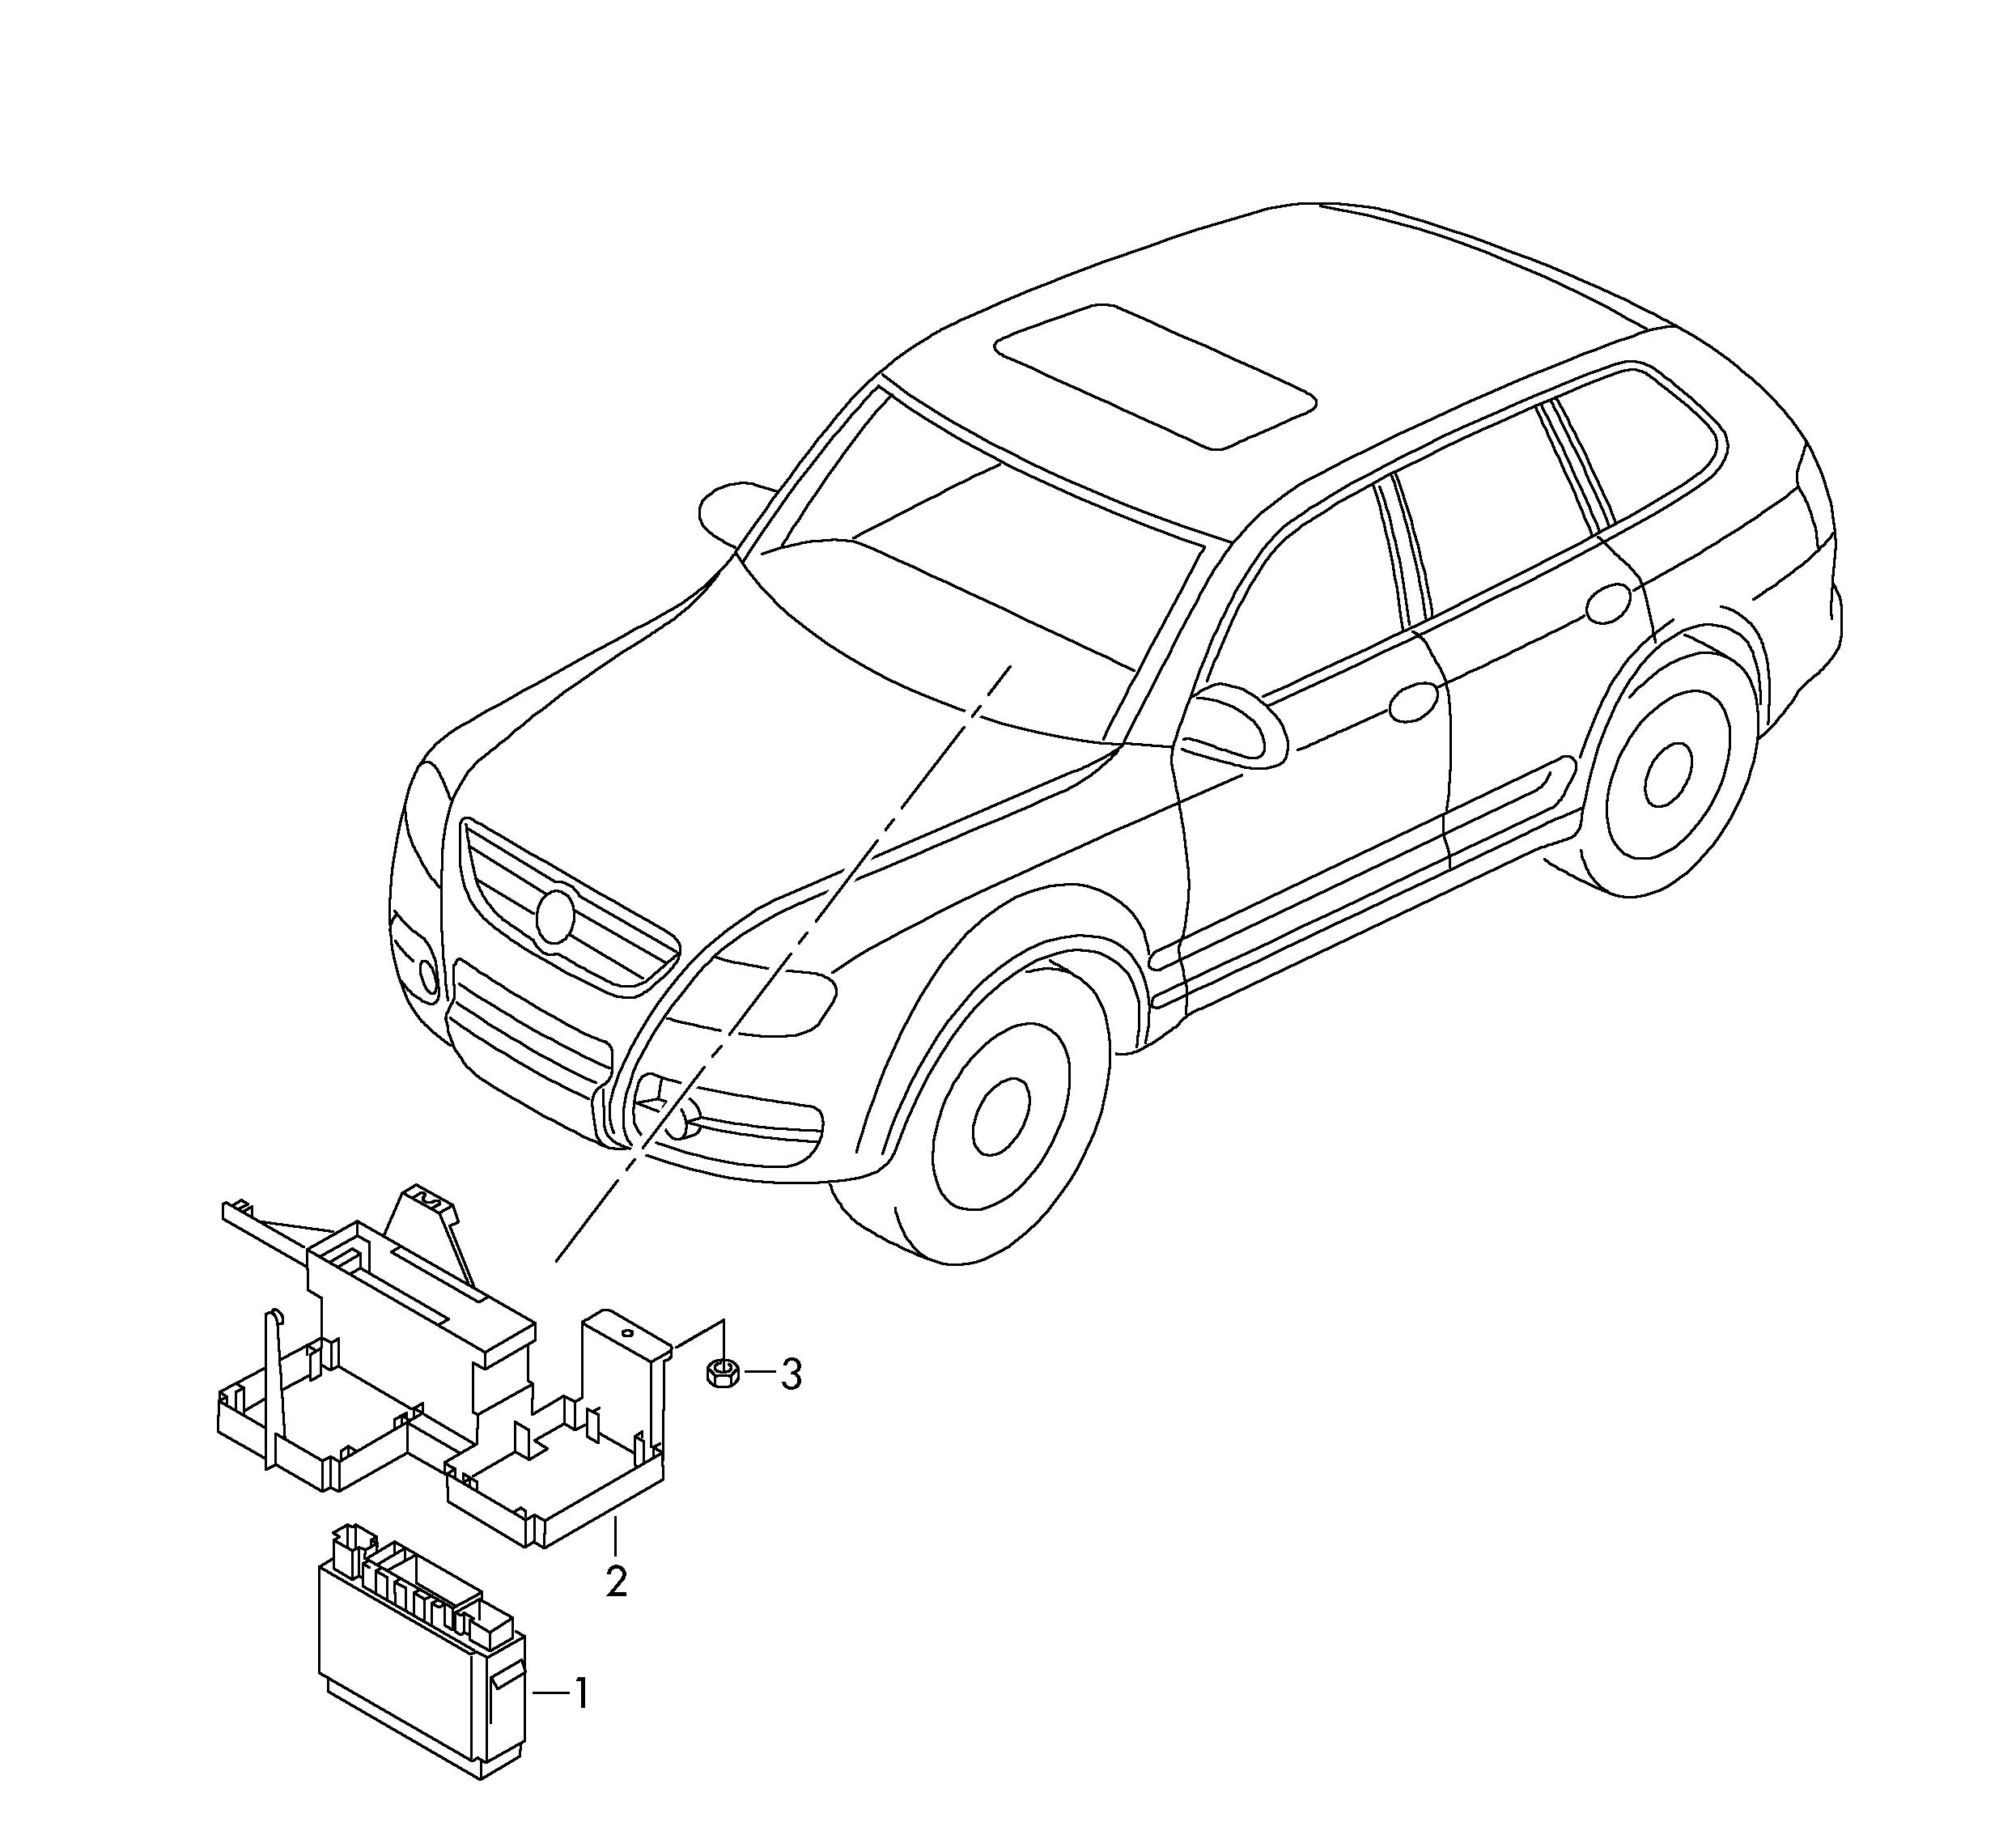 Volkswagen Touareg Onboard supply control unit. CENTRAL